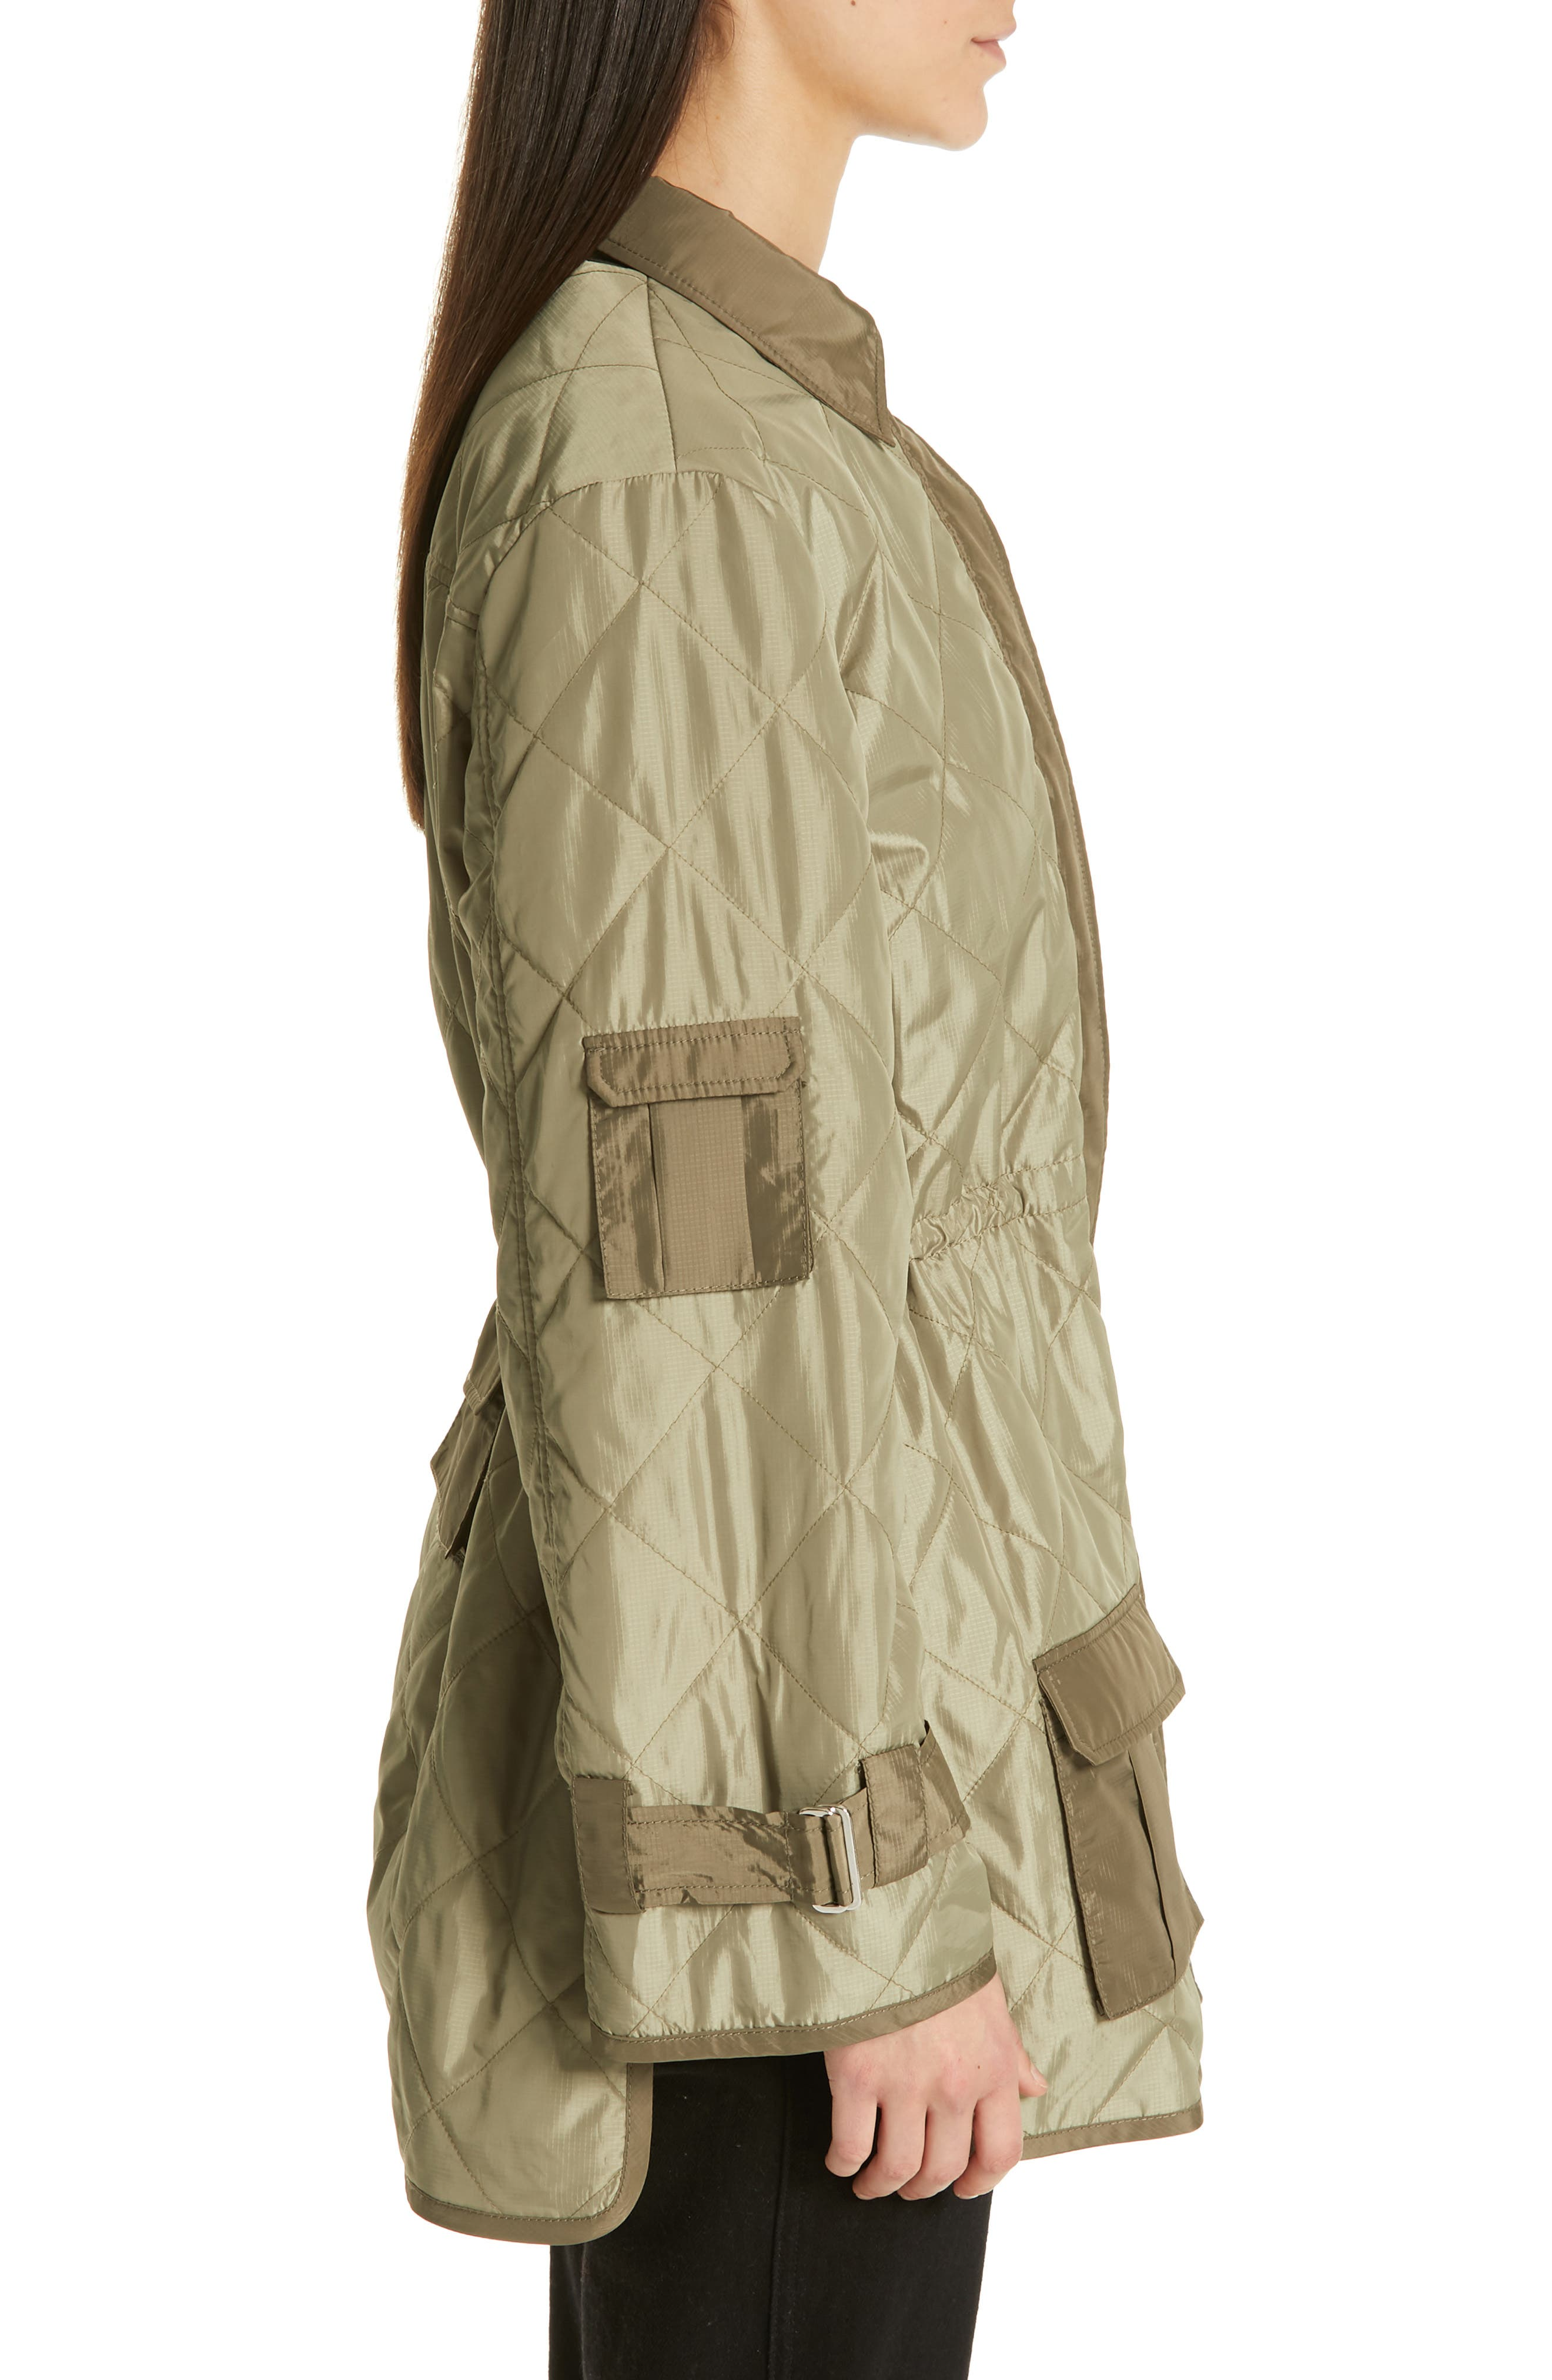 GANNI, Quilted Ripstop Jacket, Alternate thumbnail 3, color, ALOE